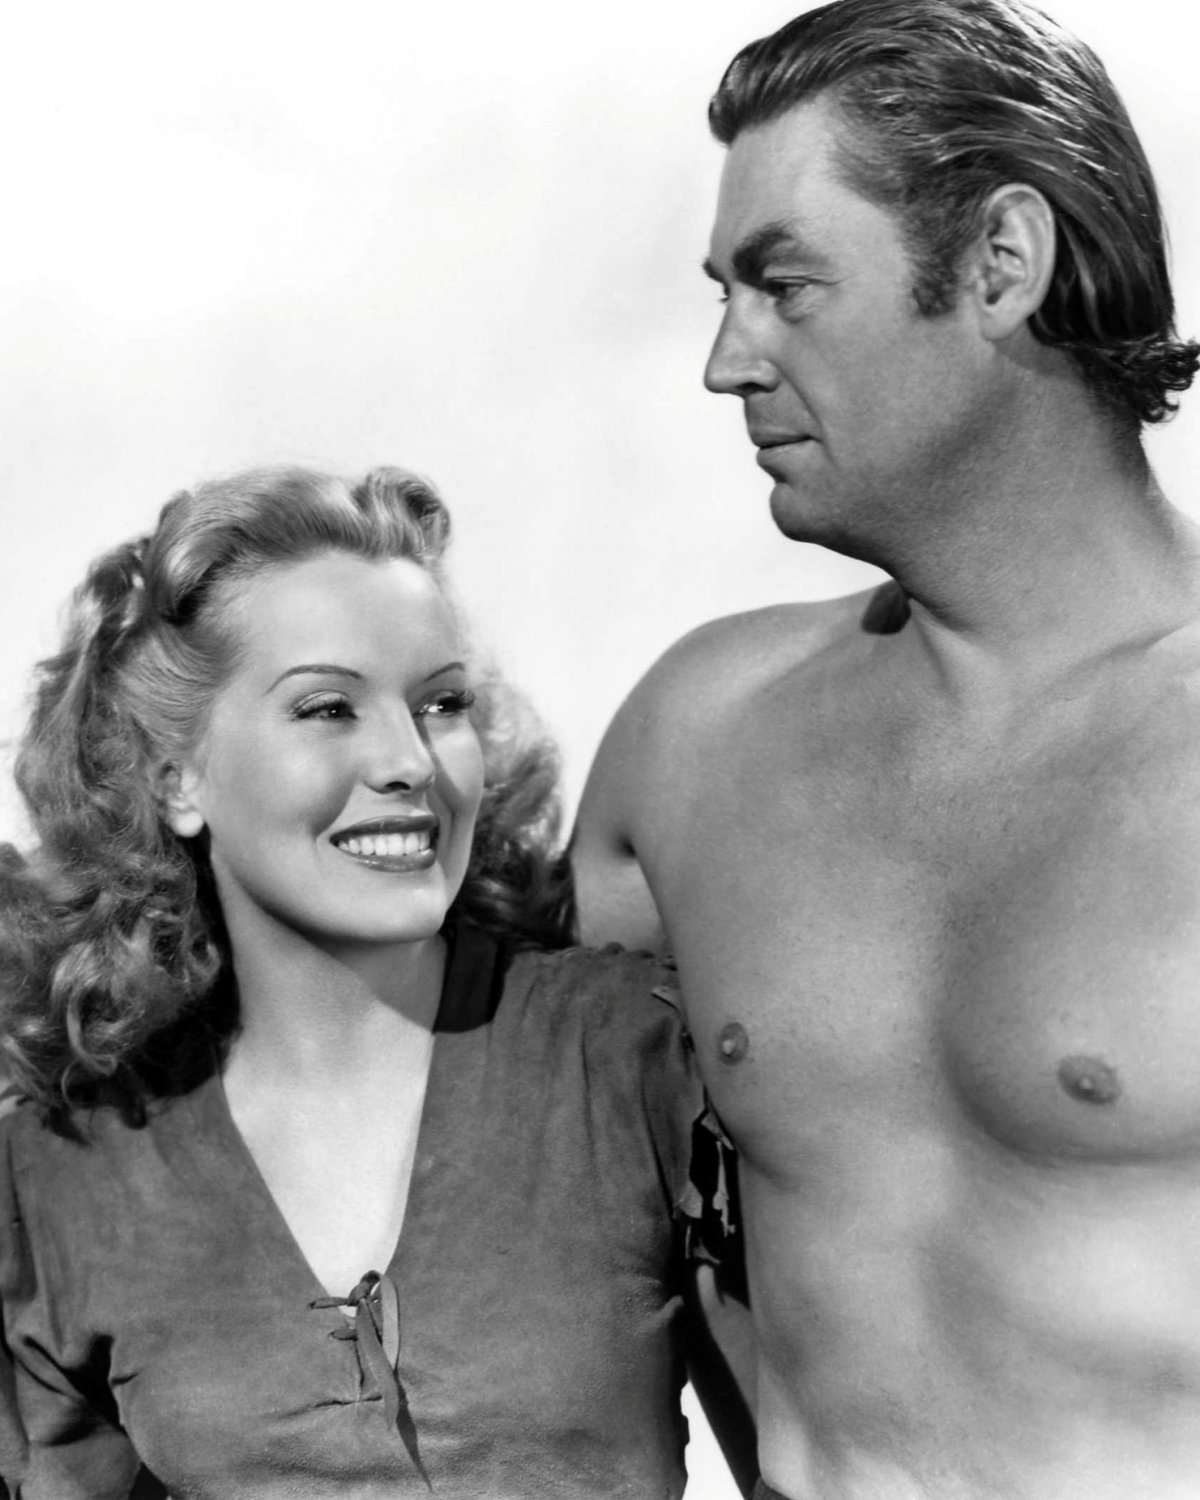 WEISSMULLER & JOYCE 'TARZAN & THE LEOPARD WOMAN' - 8X10 PUBLICITY PHOTO (AB-103)